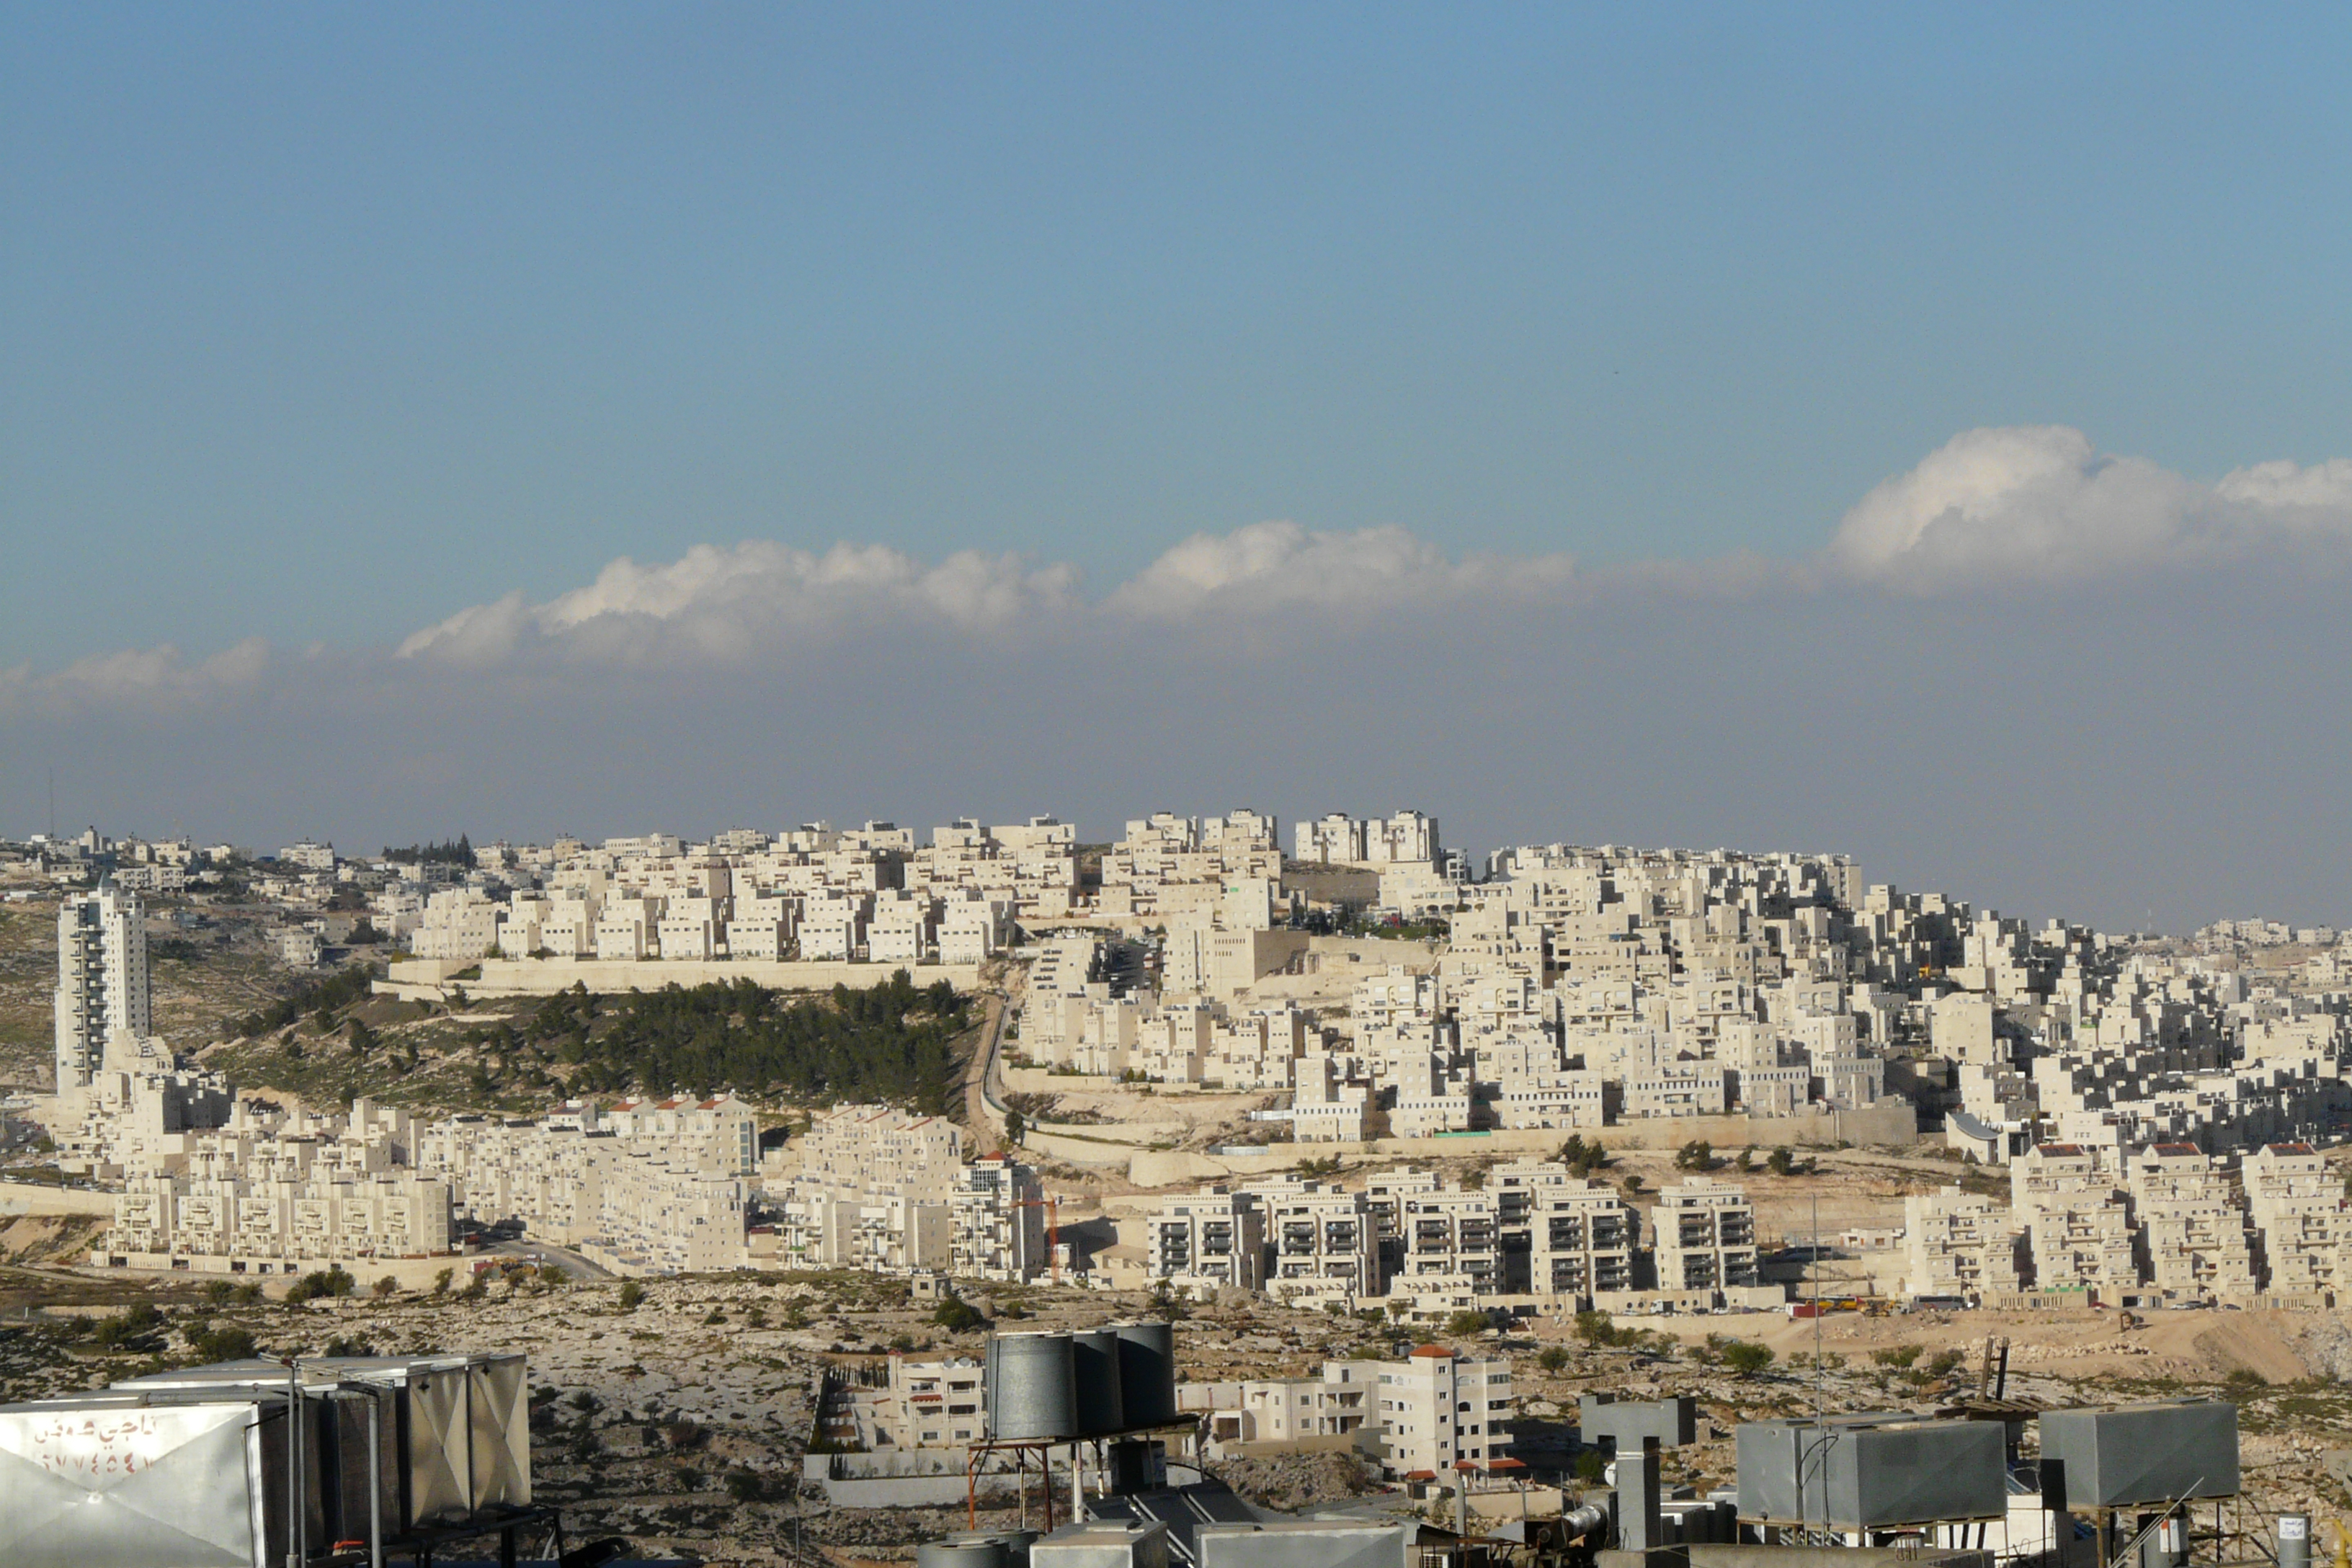 Solar Power In The West Bank – Green Progress or Bad Politics?